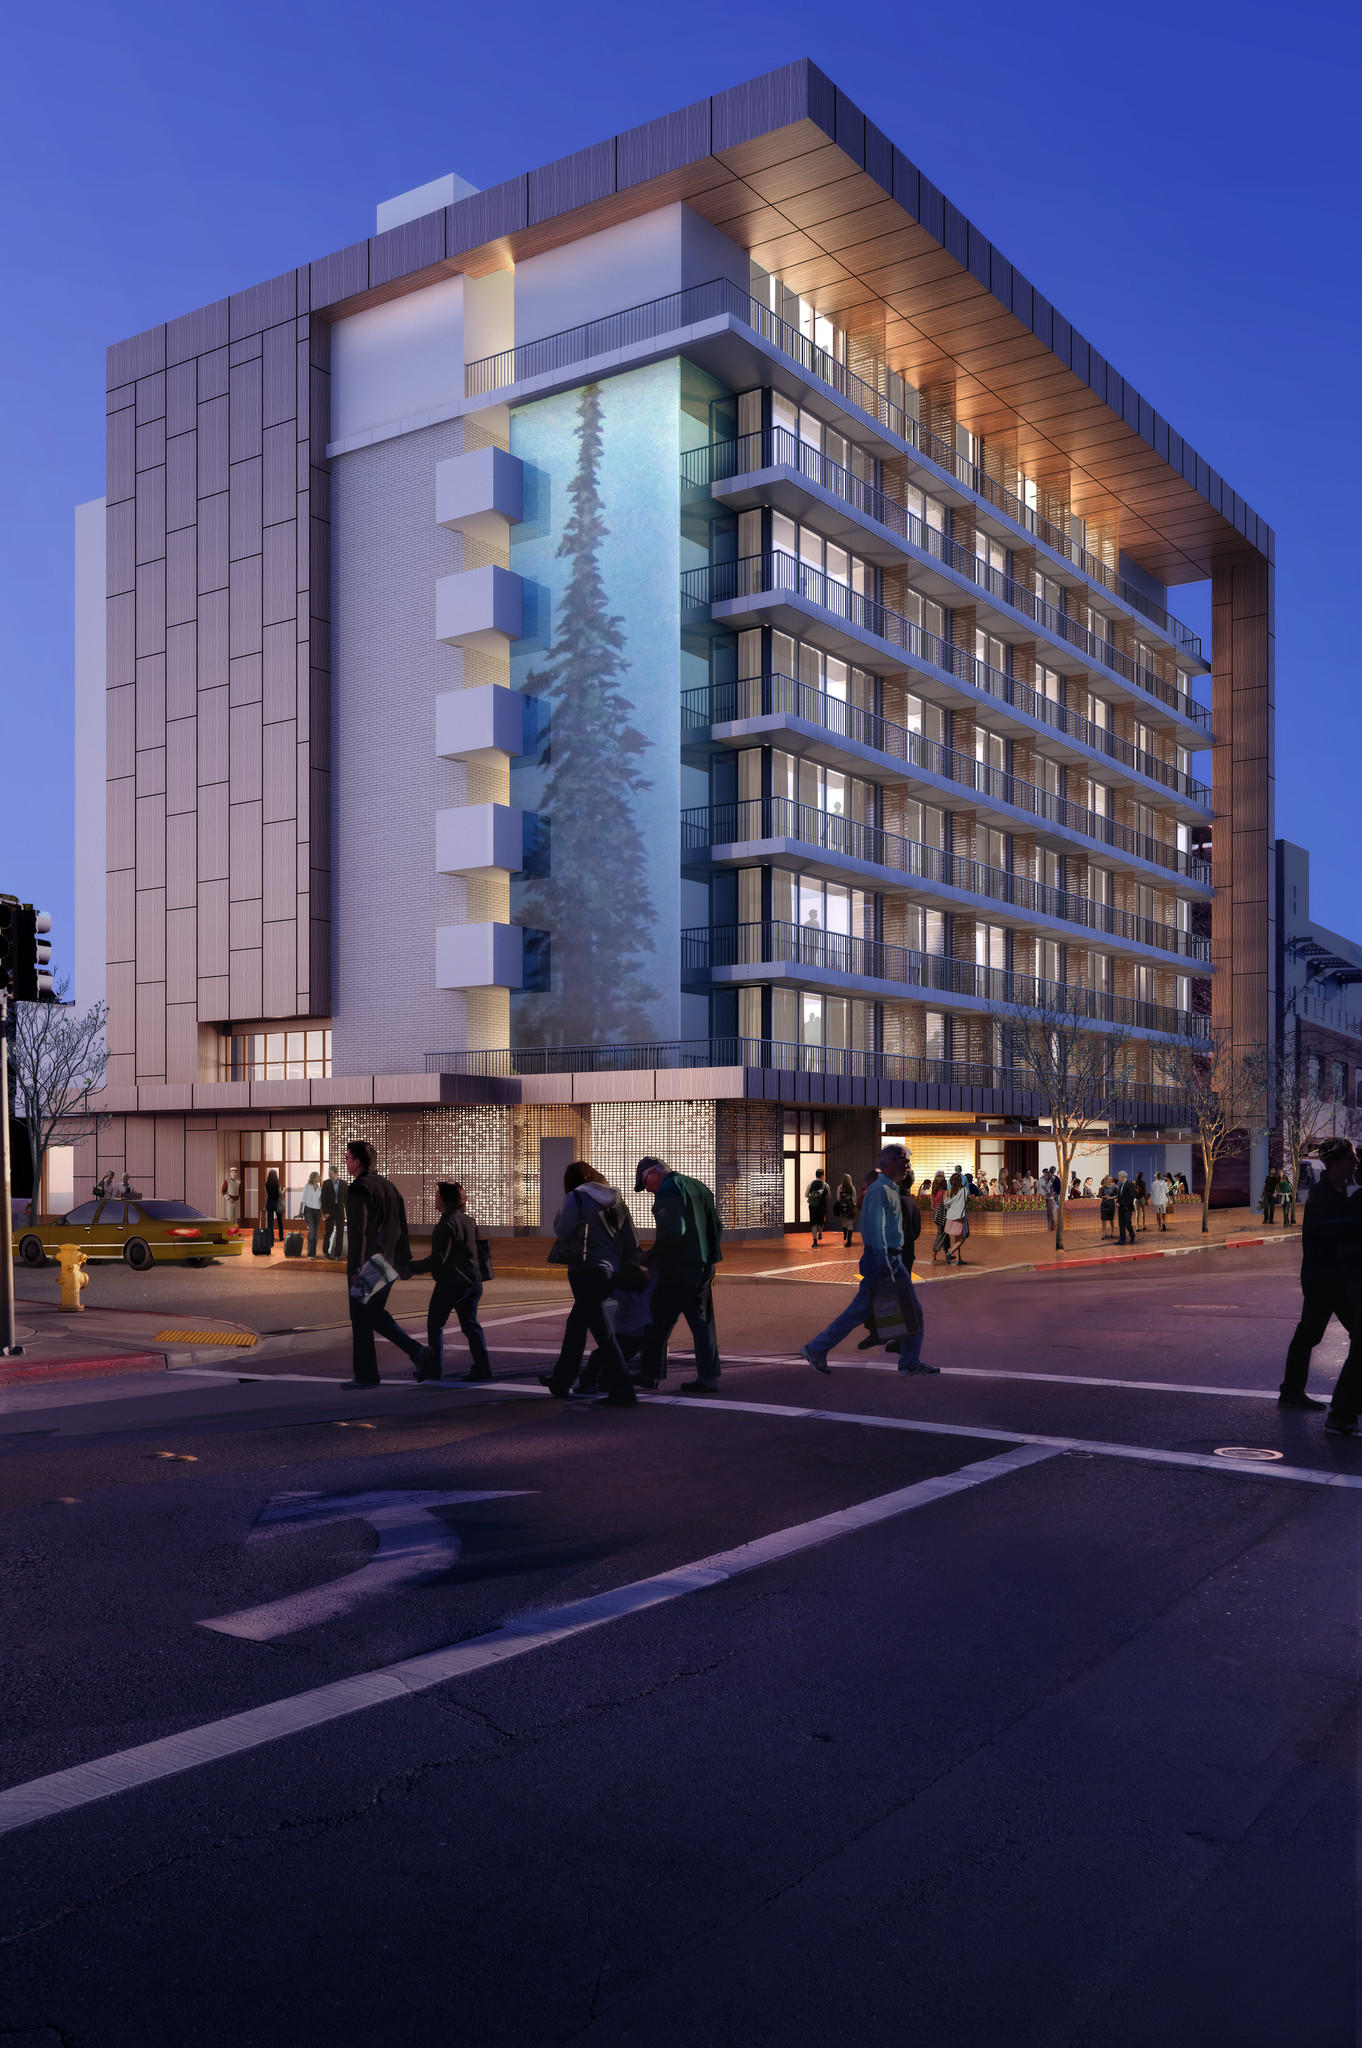 The Epiphany Hotel, shown here in an artist's rendering, is expected to open in Palo Alto in March.